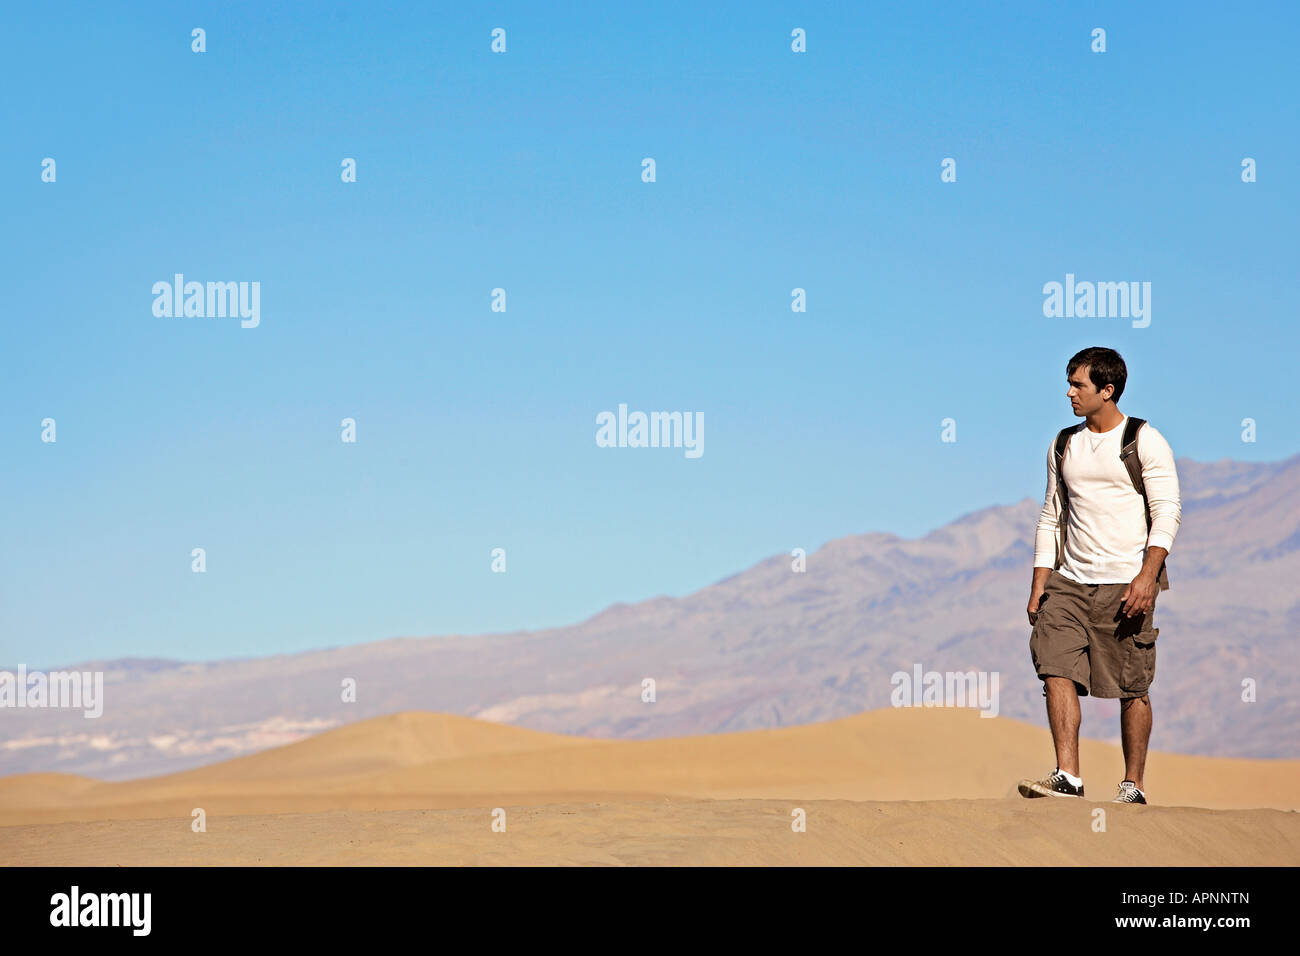 Young Man Hiking in Desert Stock Photo